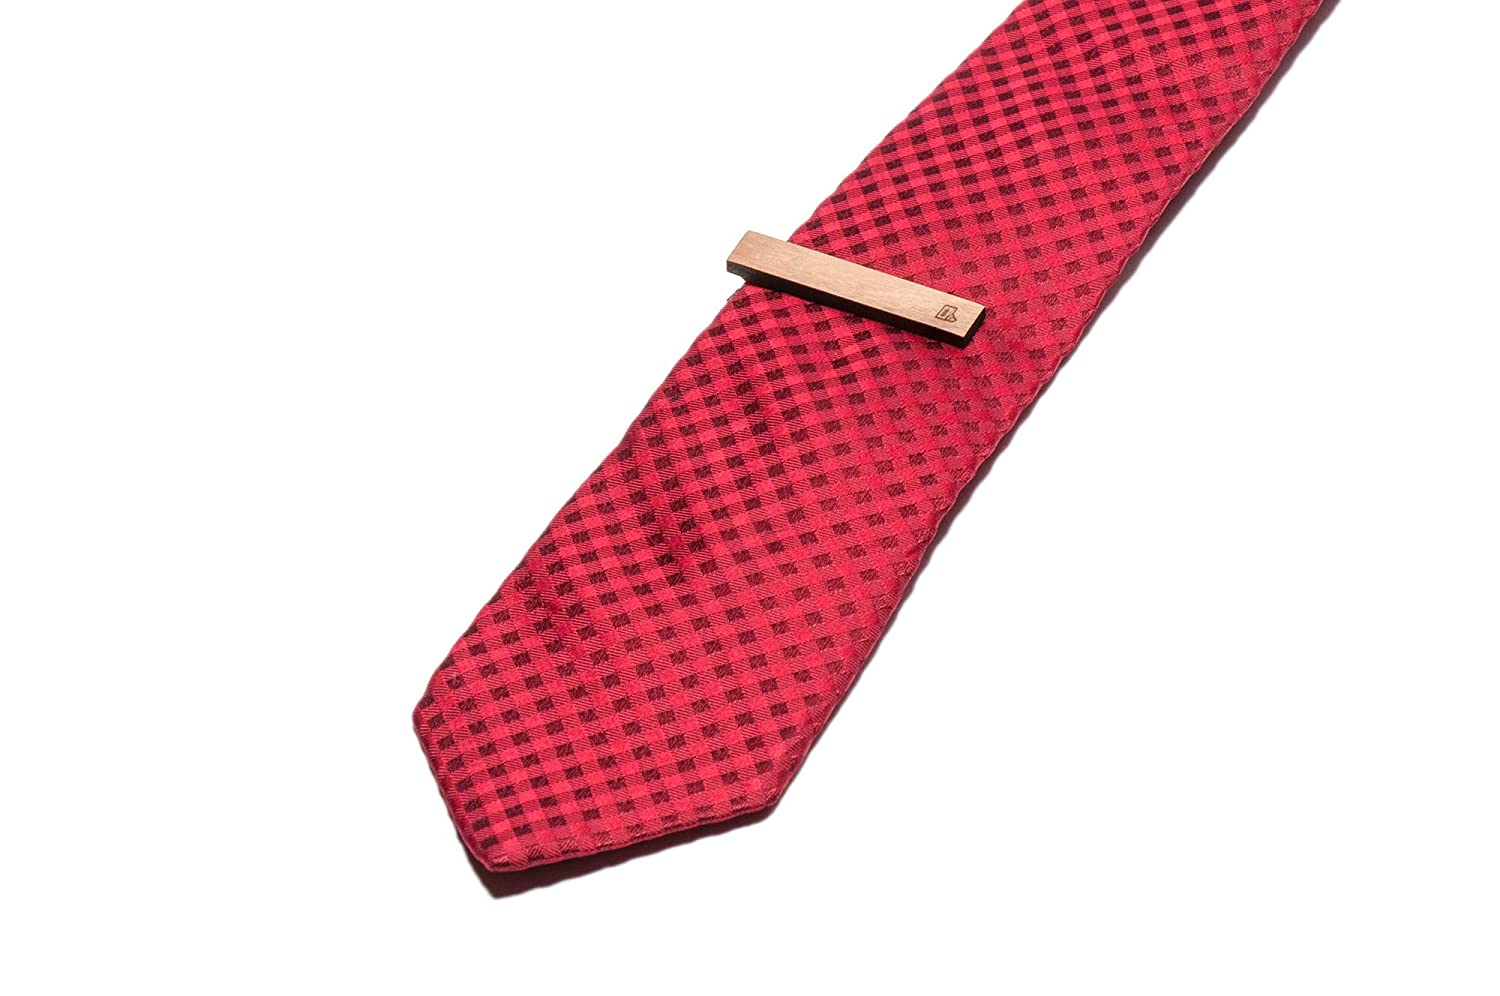 Cherry Wood Tie Bar Engraved in The USA Wooden Accessories Company Wooden Tie Clips with Laser Engraved Flour and Eggs Design